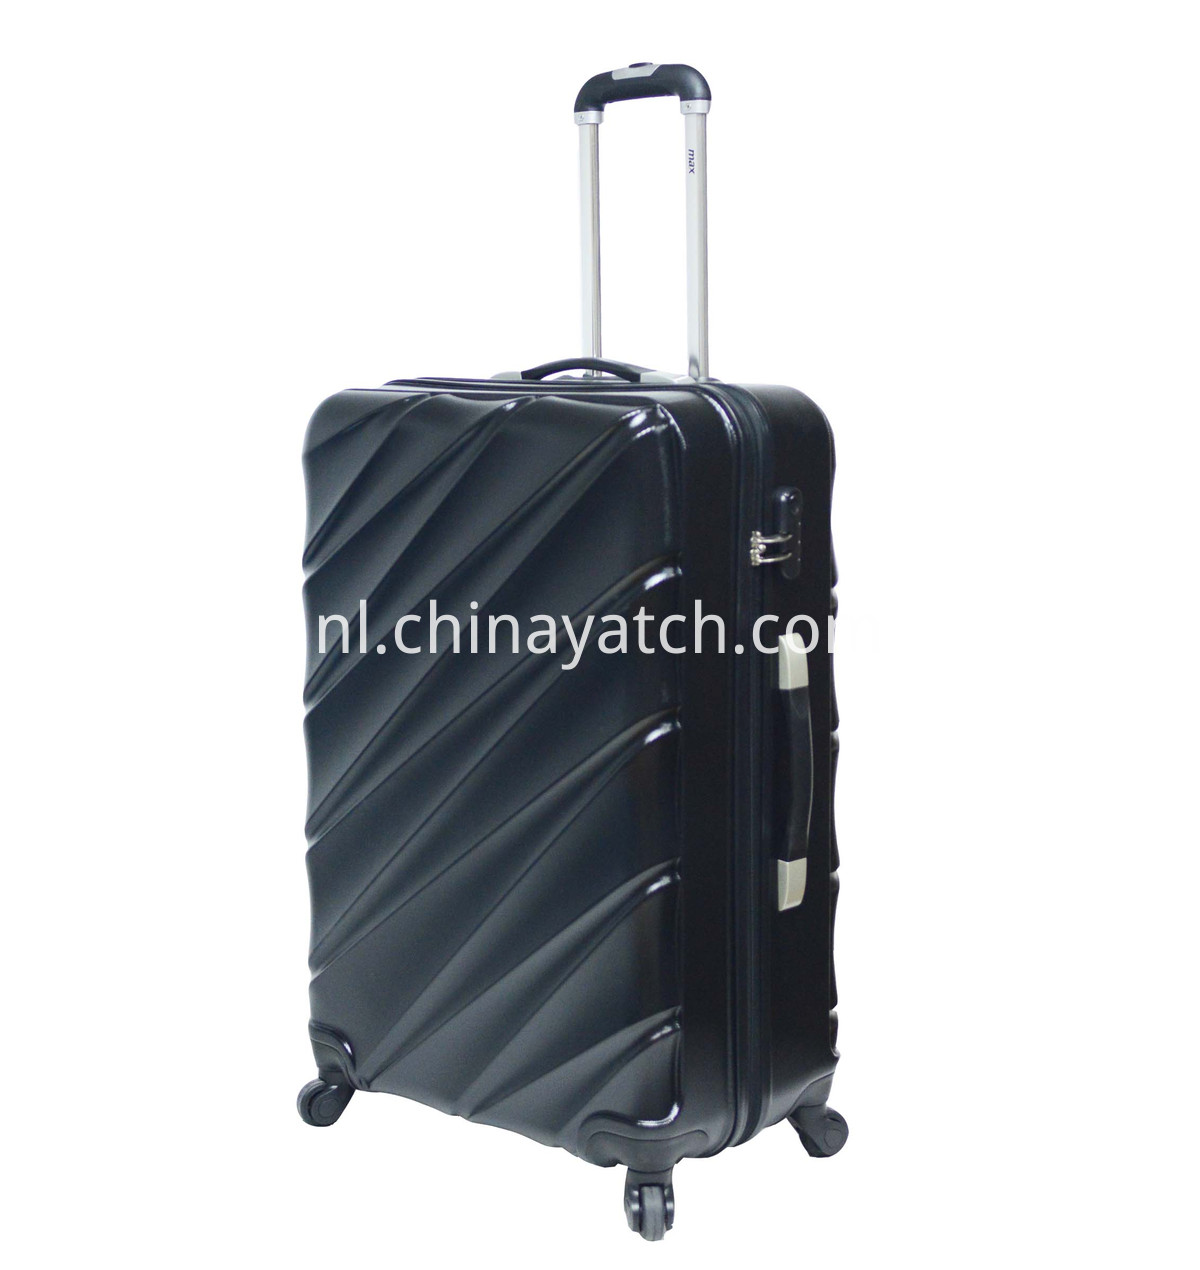 2018 new material luggage